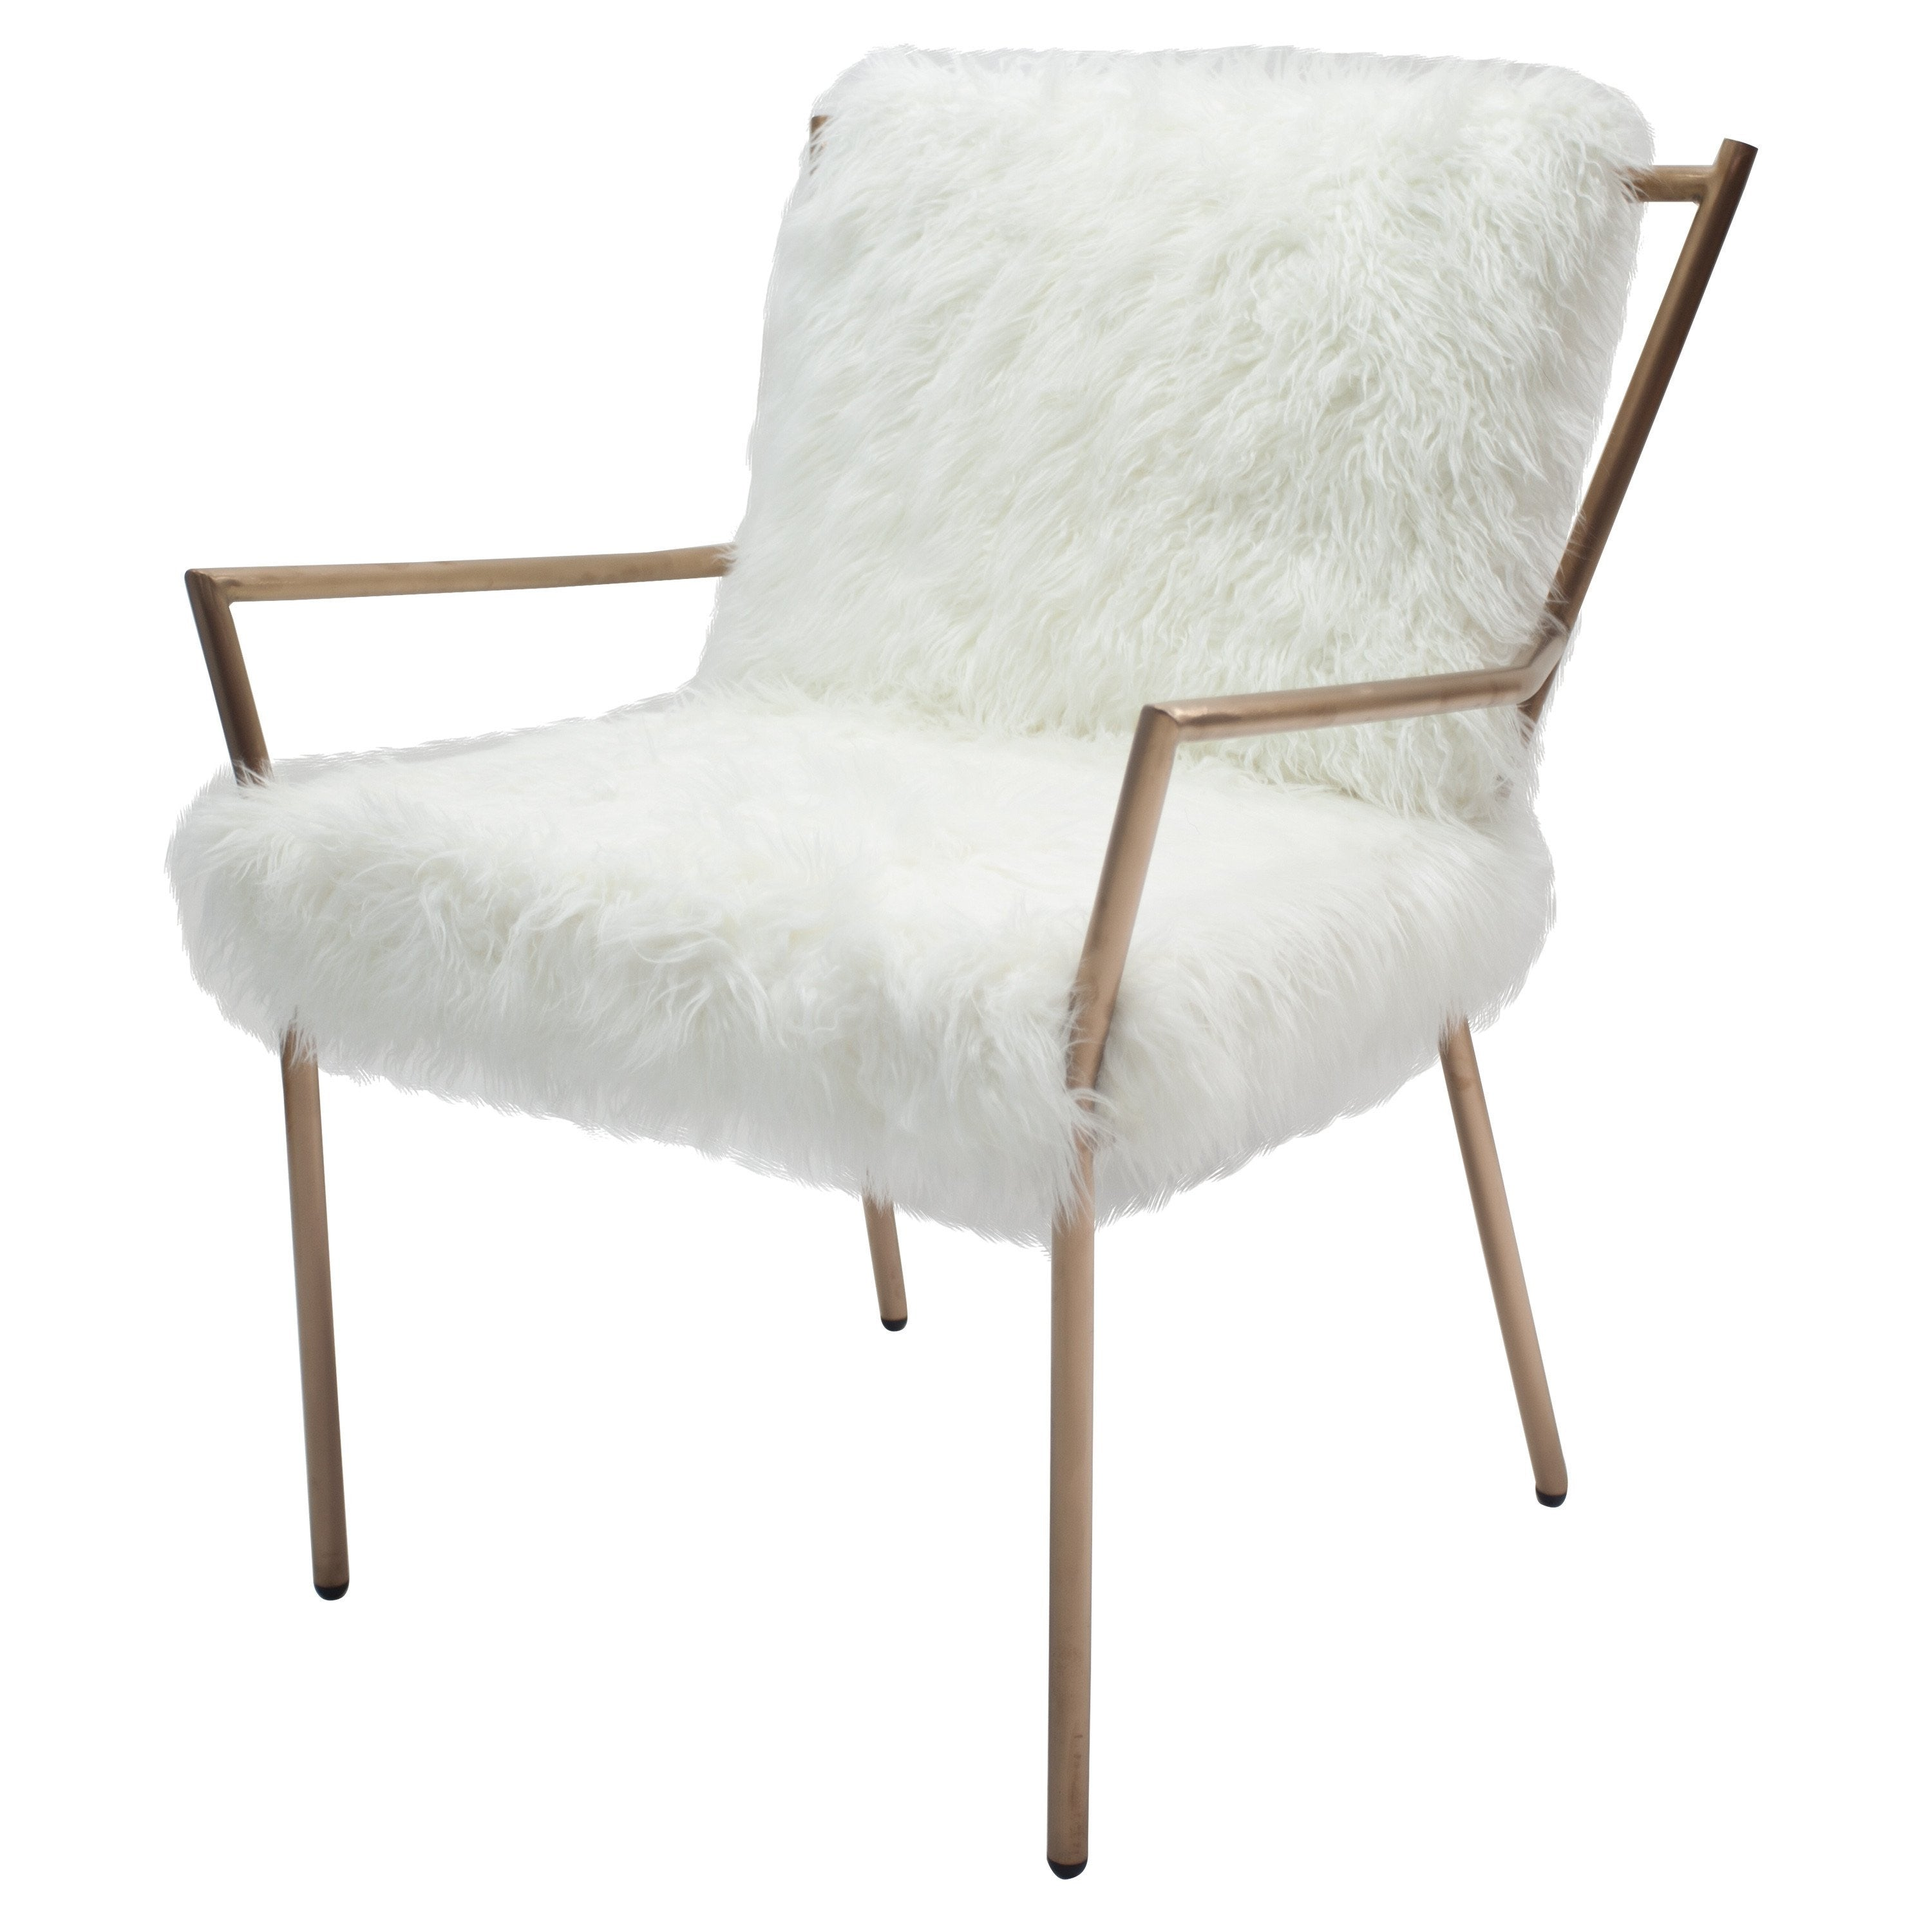 modern accent chairs midcentury modern accent chairs youull  - bancroft faux fur accent chair whiterose gold